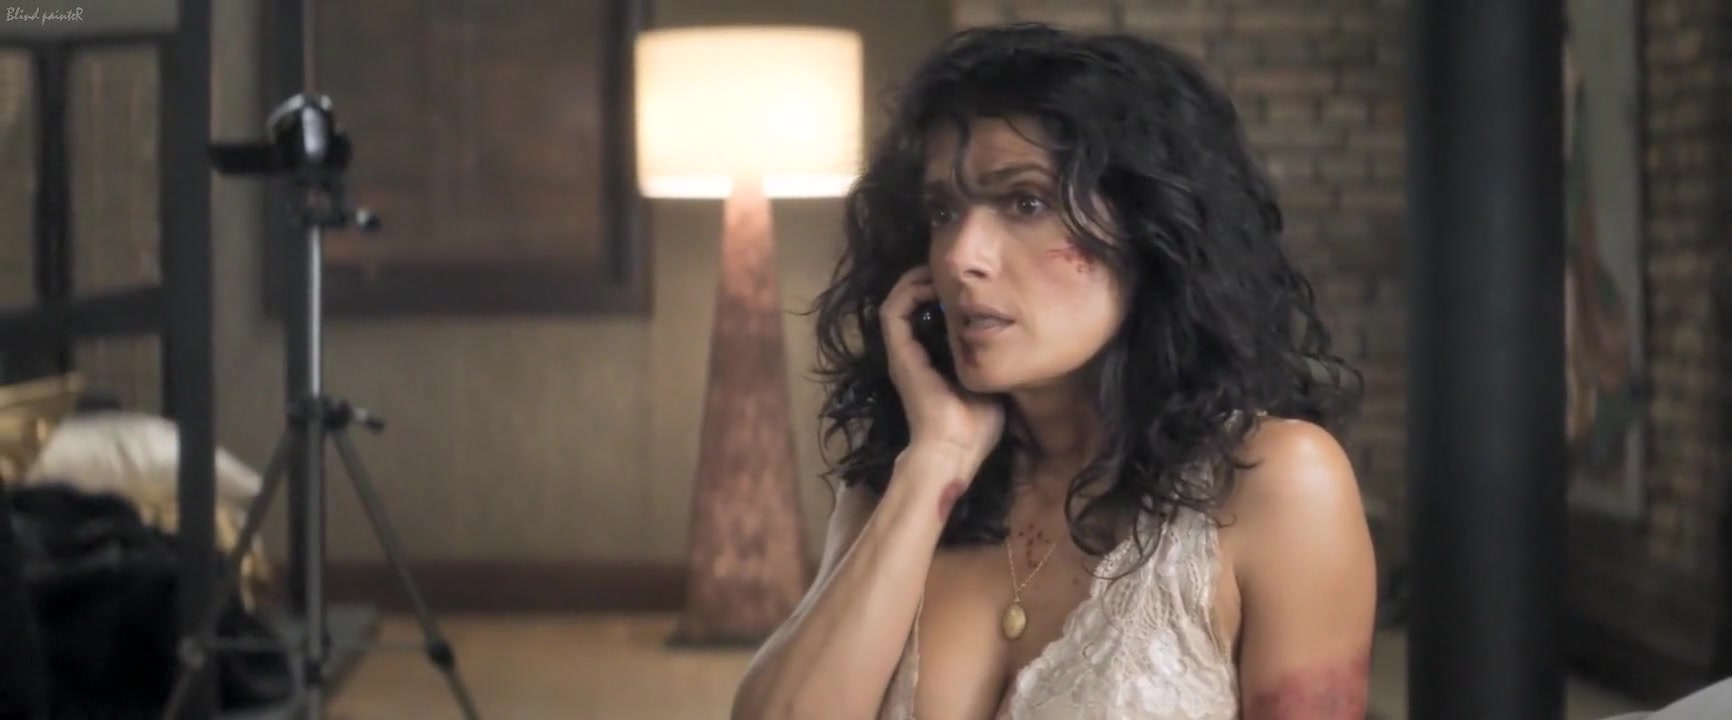 Everly (2014) Salma Hayek Hot and sexy south indian actress